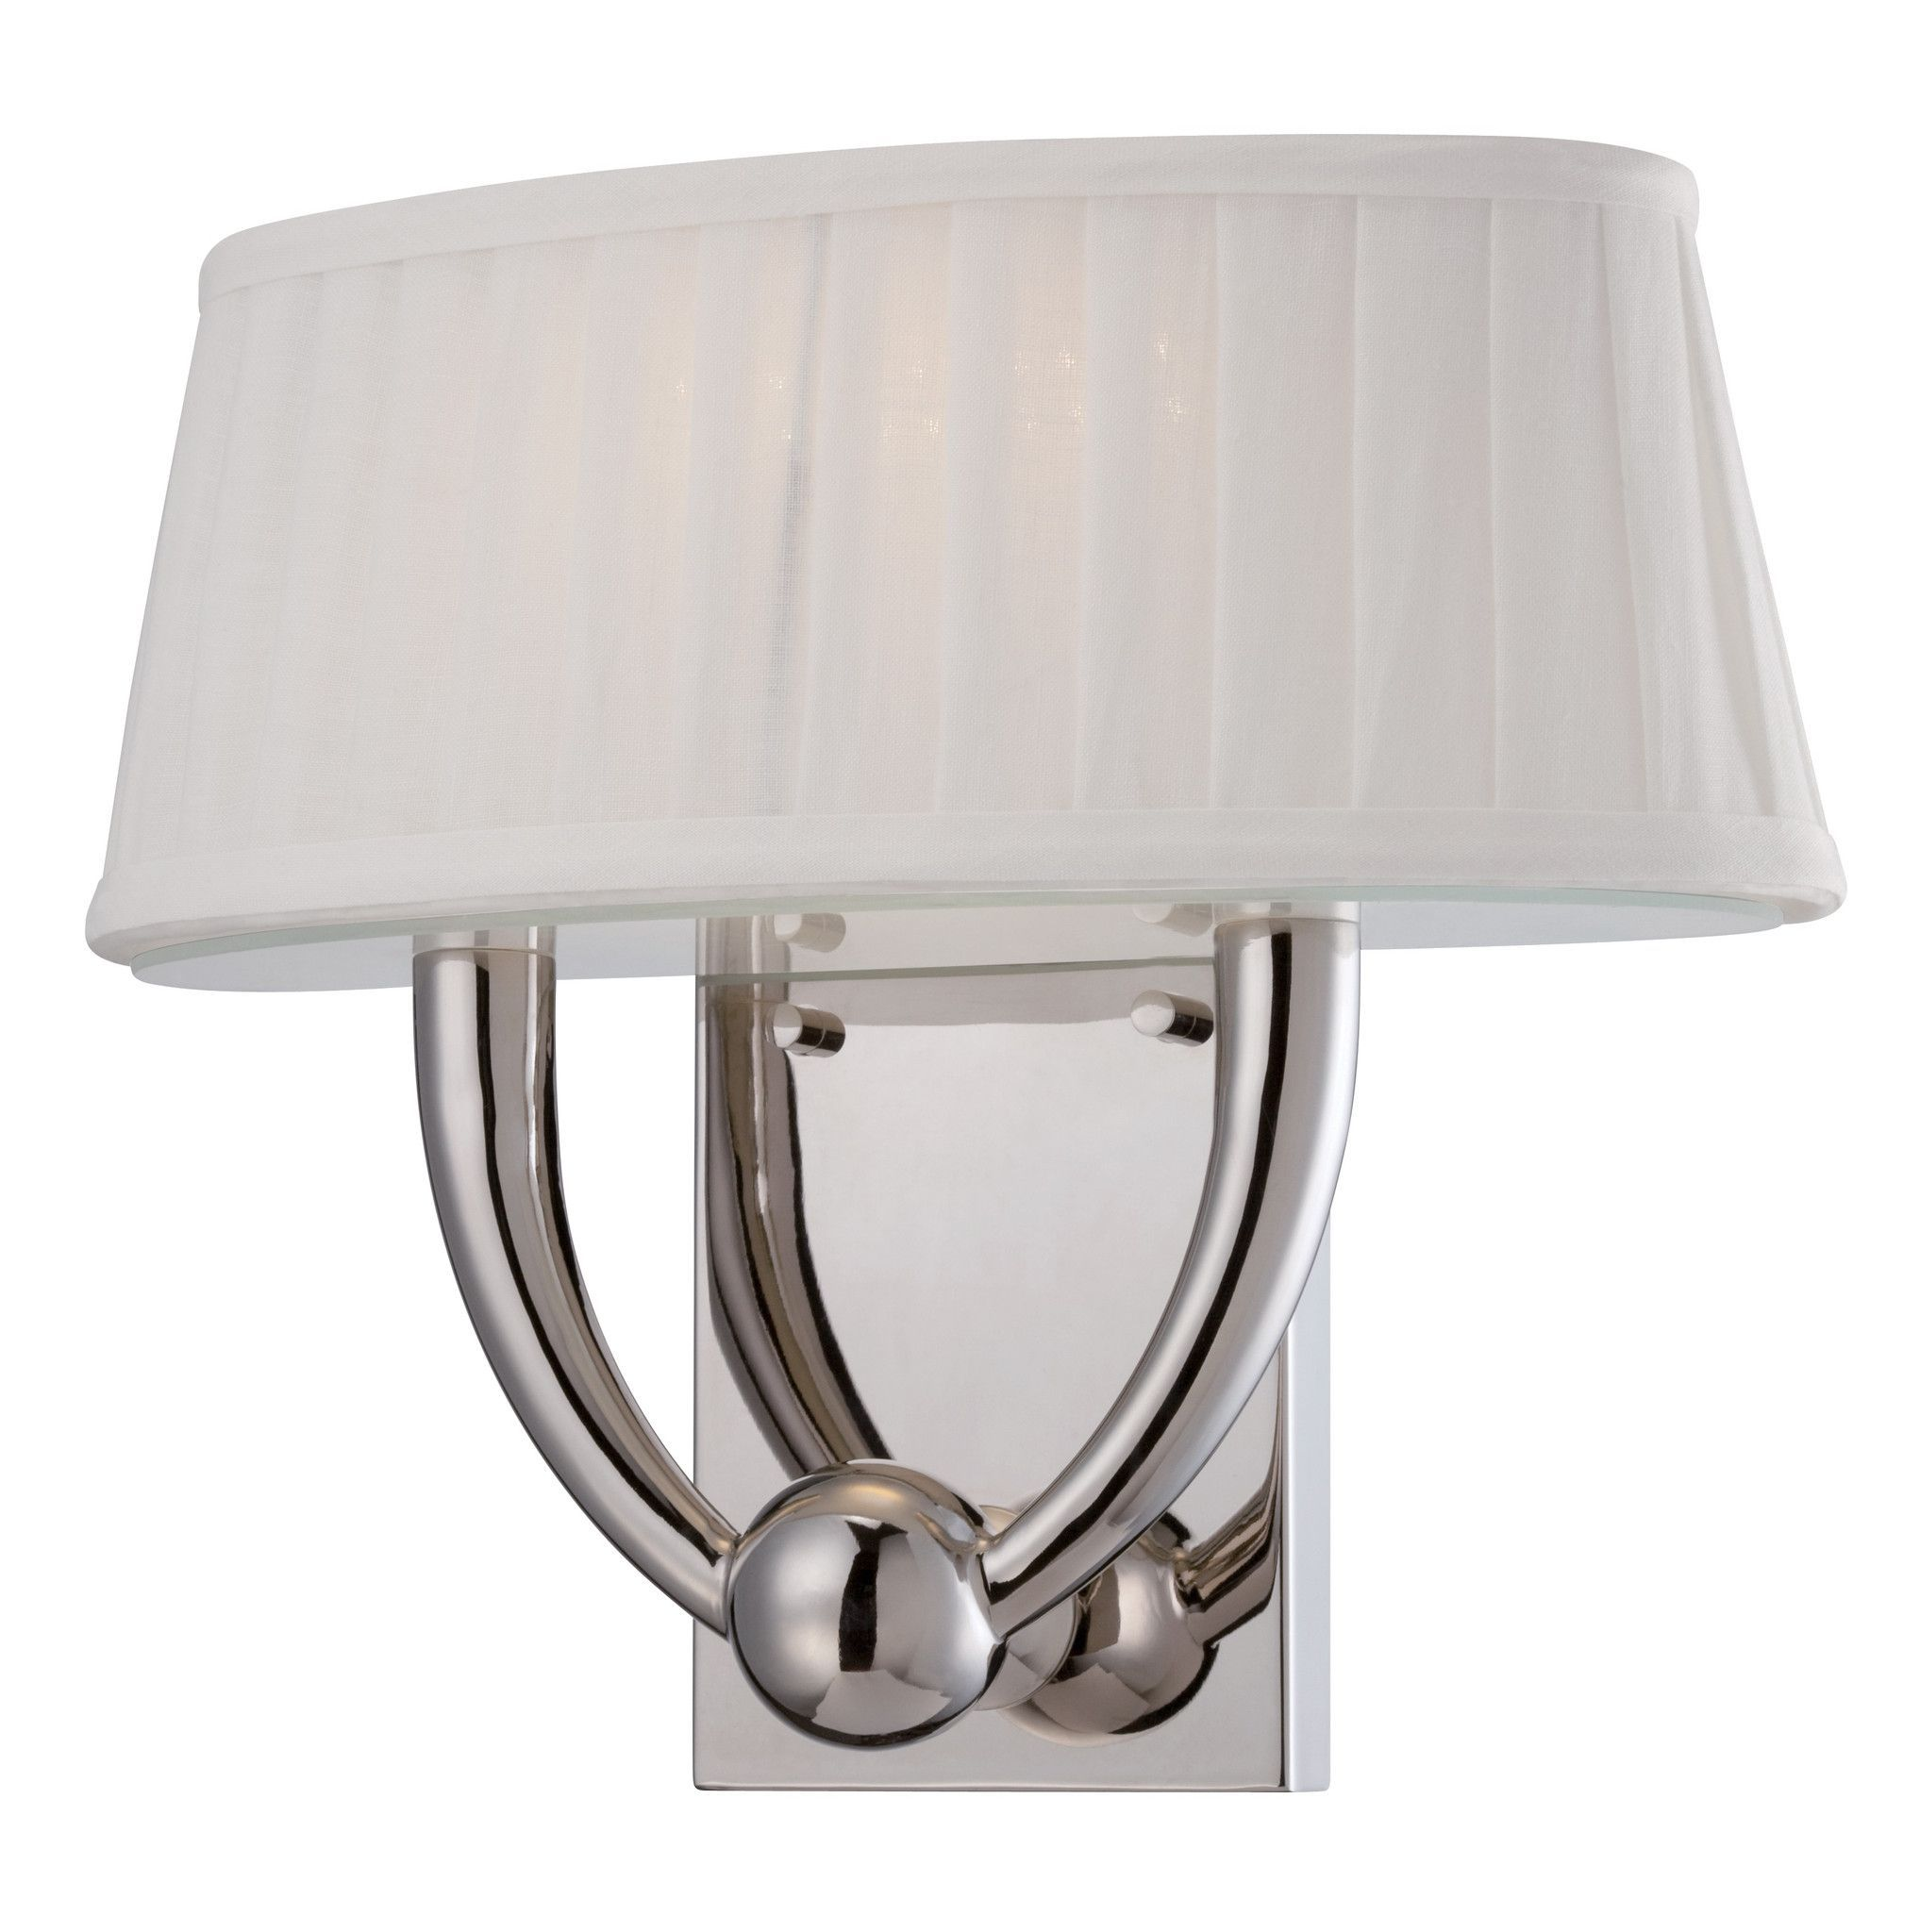 Light wall mounted led wall sconce in polished nickel finish